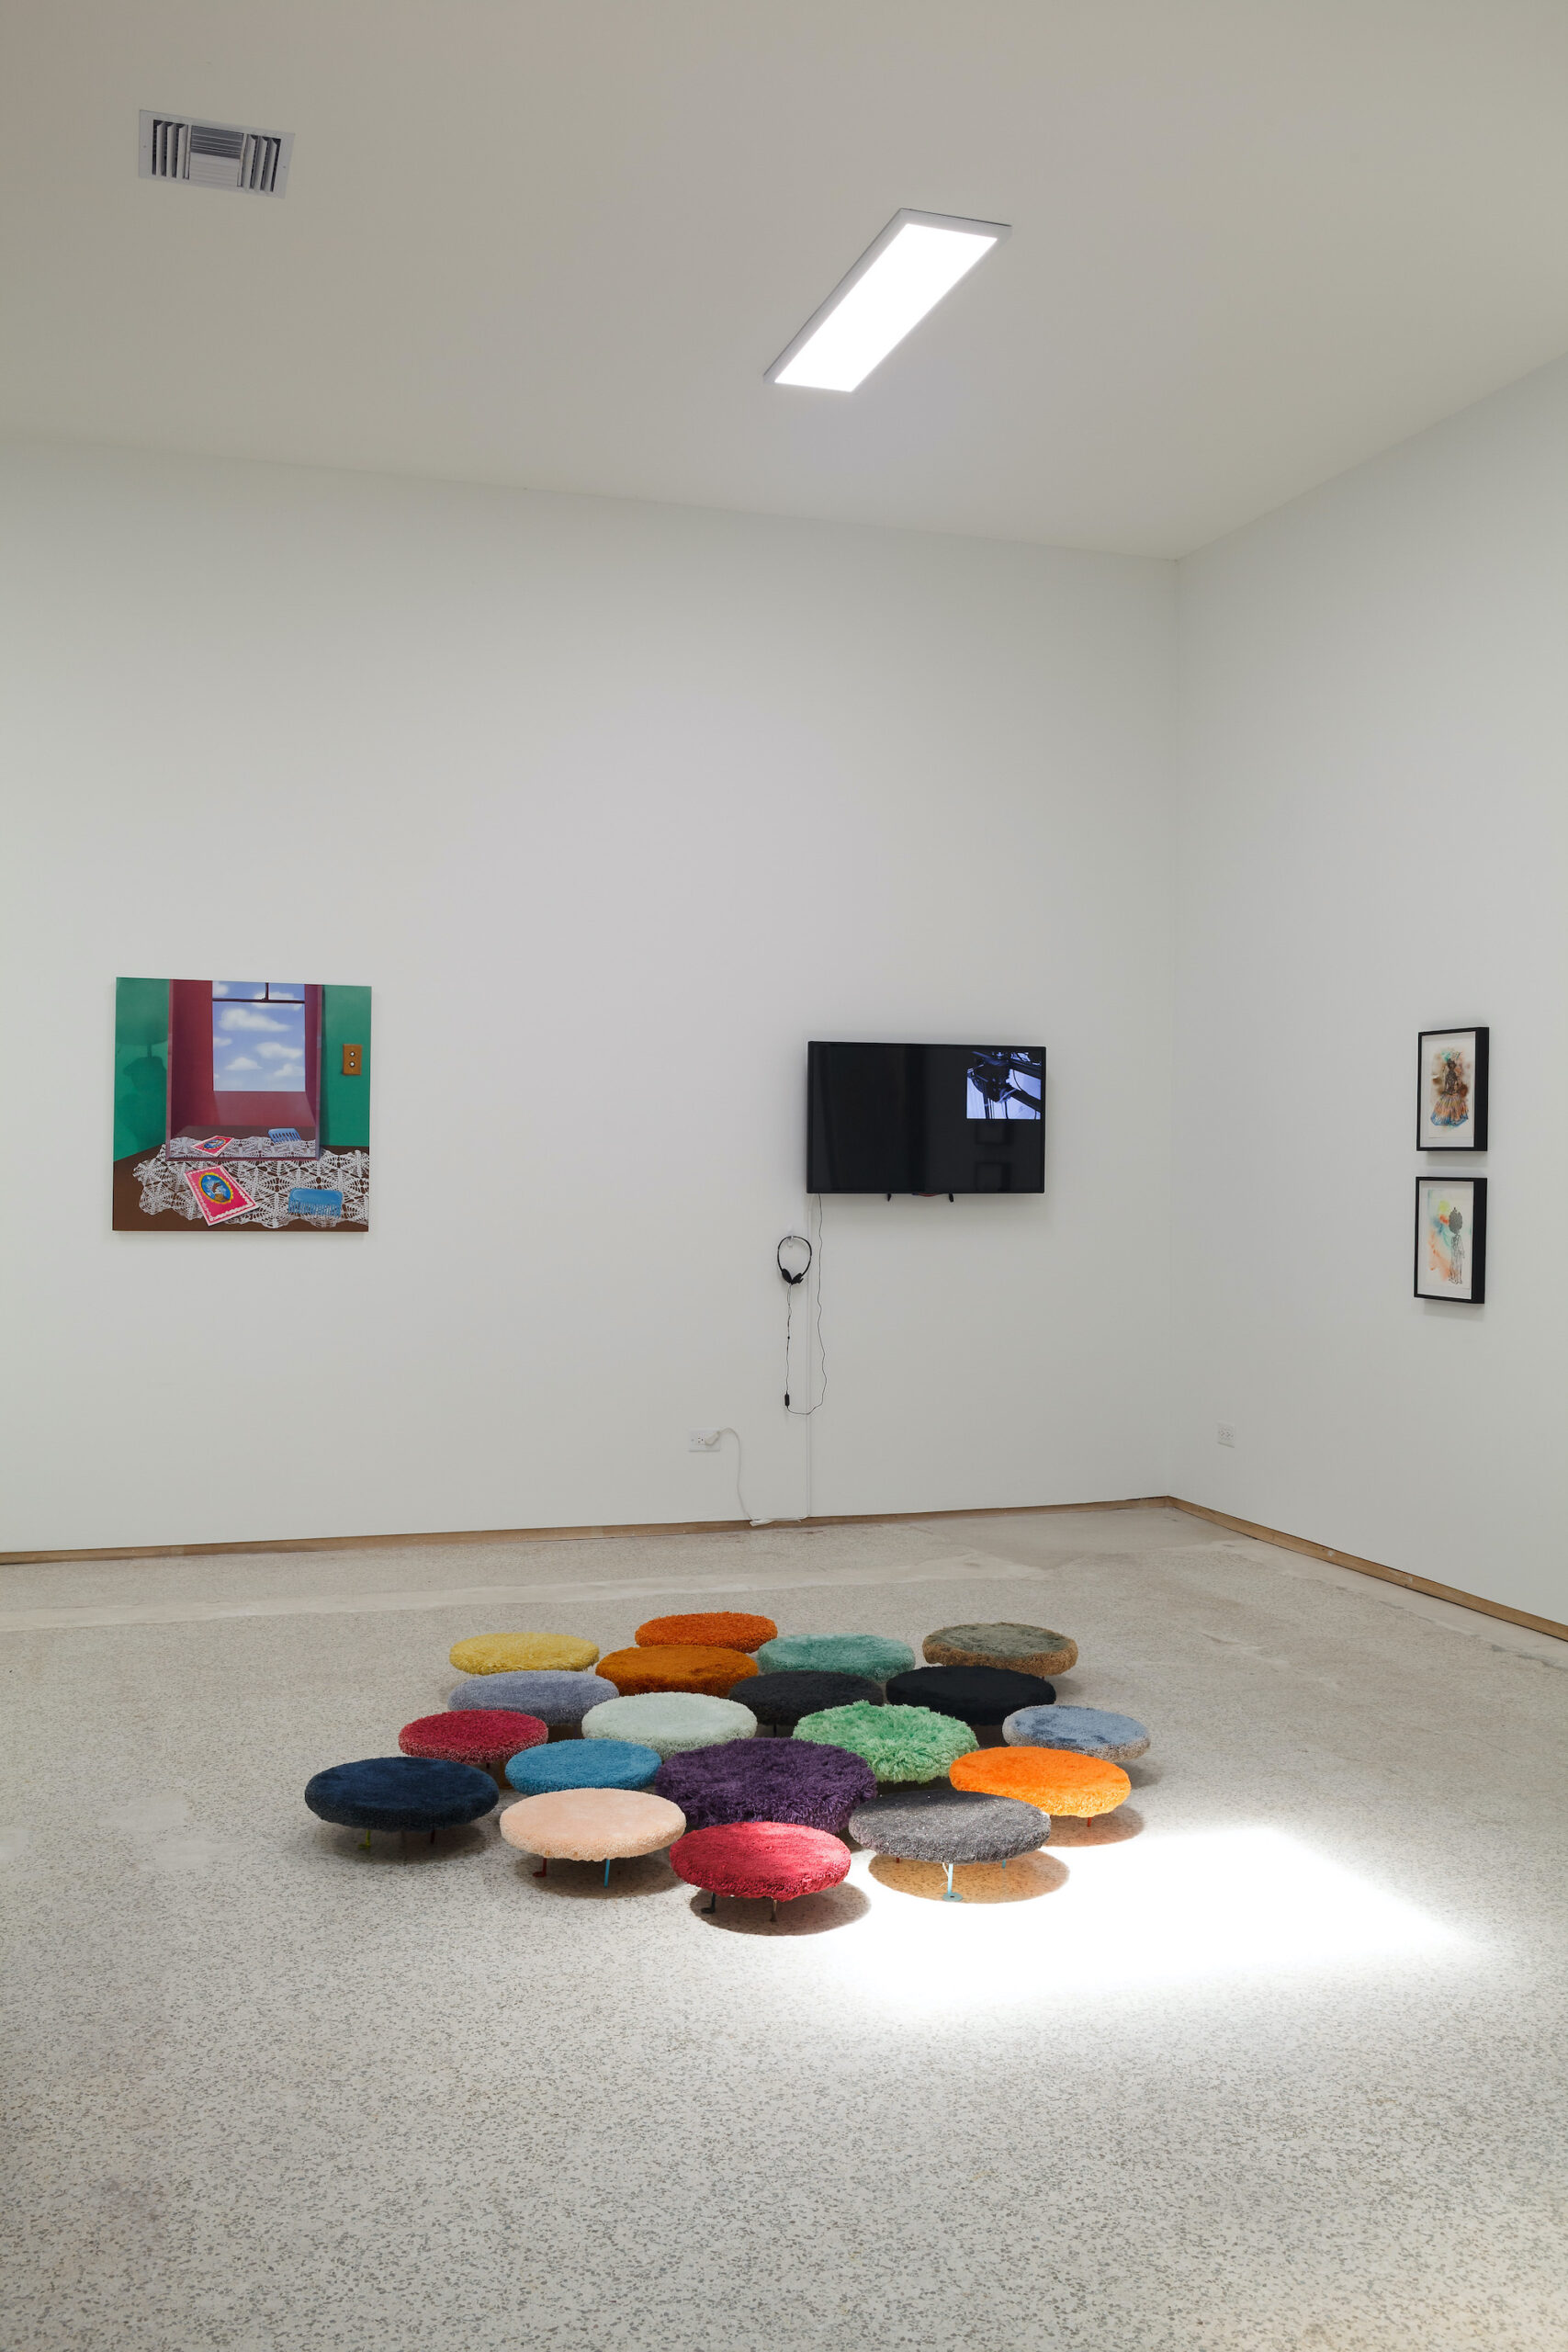 our constellations: astral embraces and tactual consciousness (Installation view b), 2021, Emerson Dorsch, Miami FL